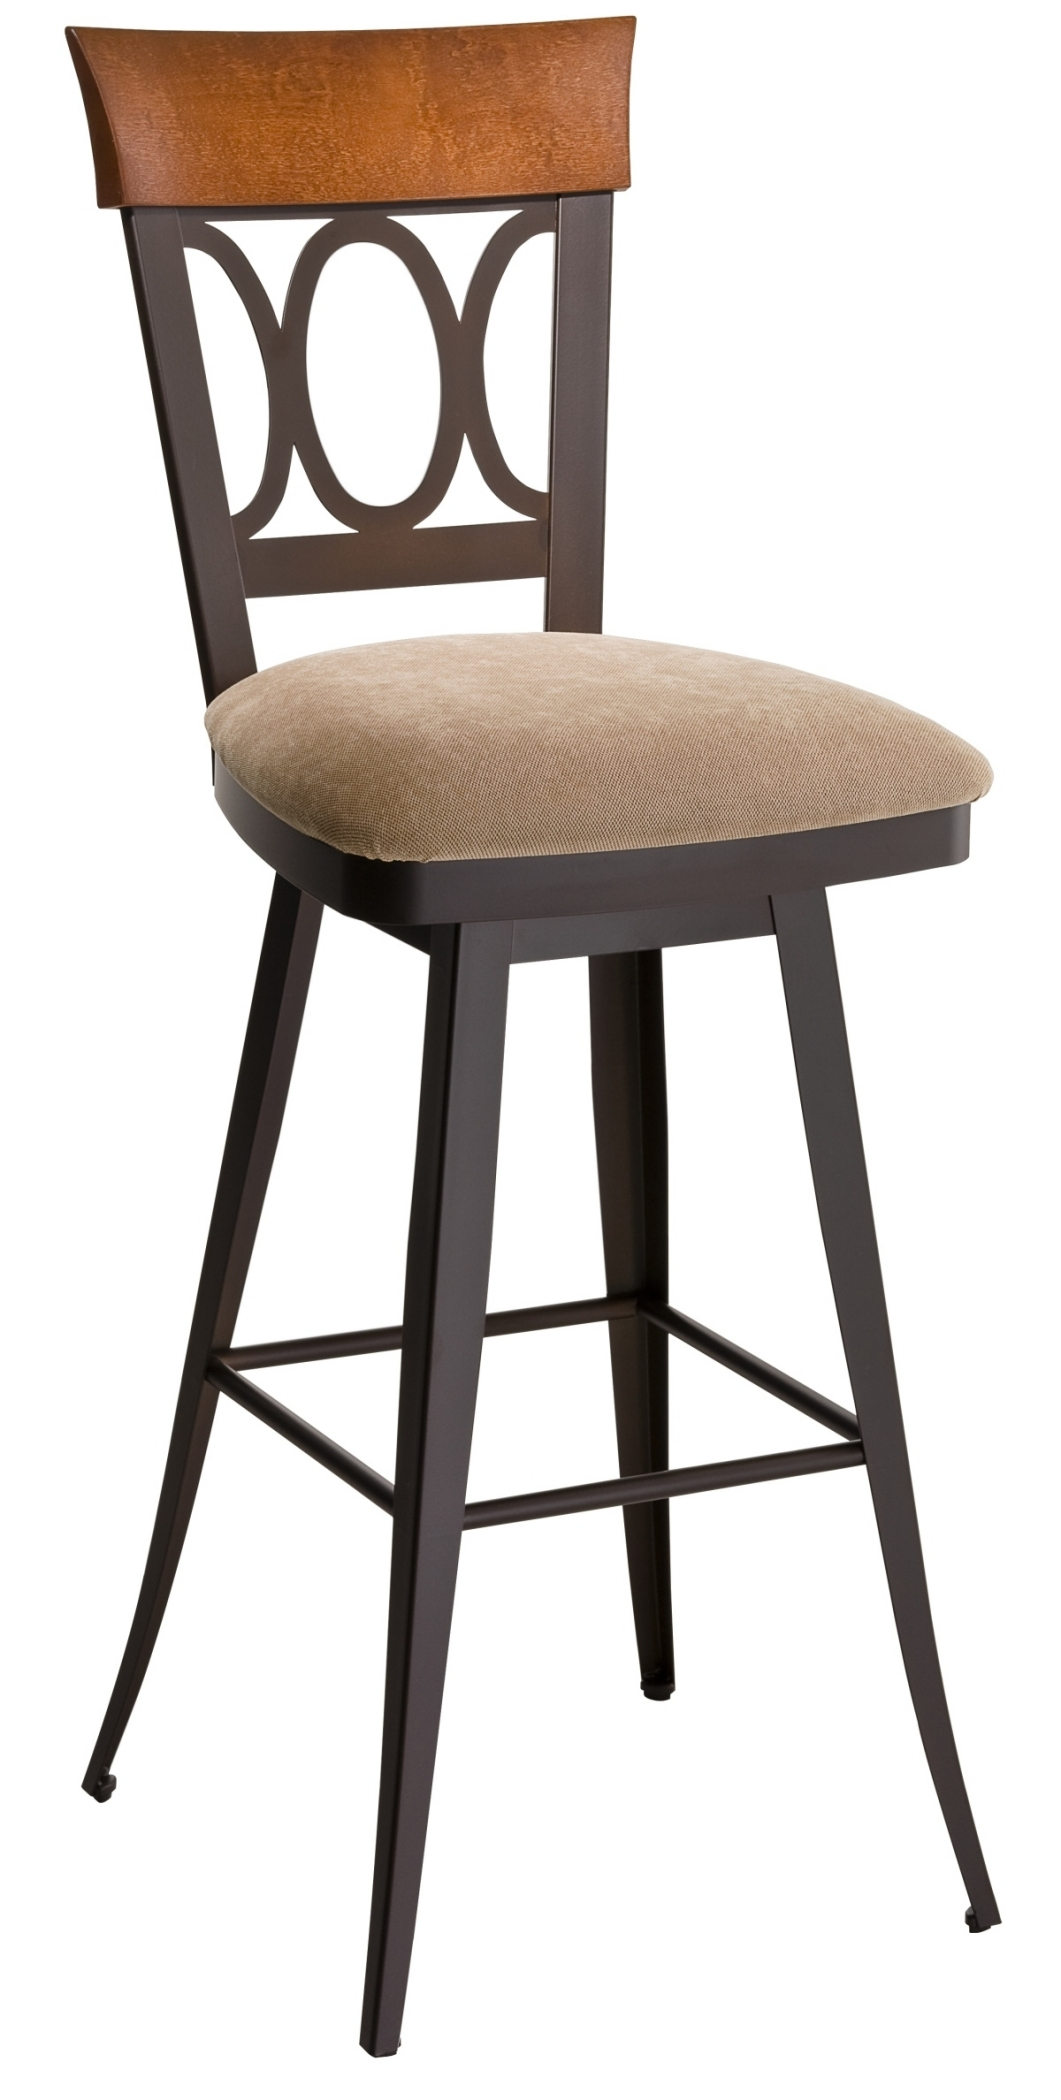 Amisco Barstools Amisco Bar Stools ...